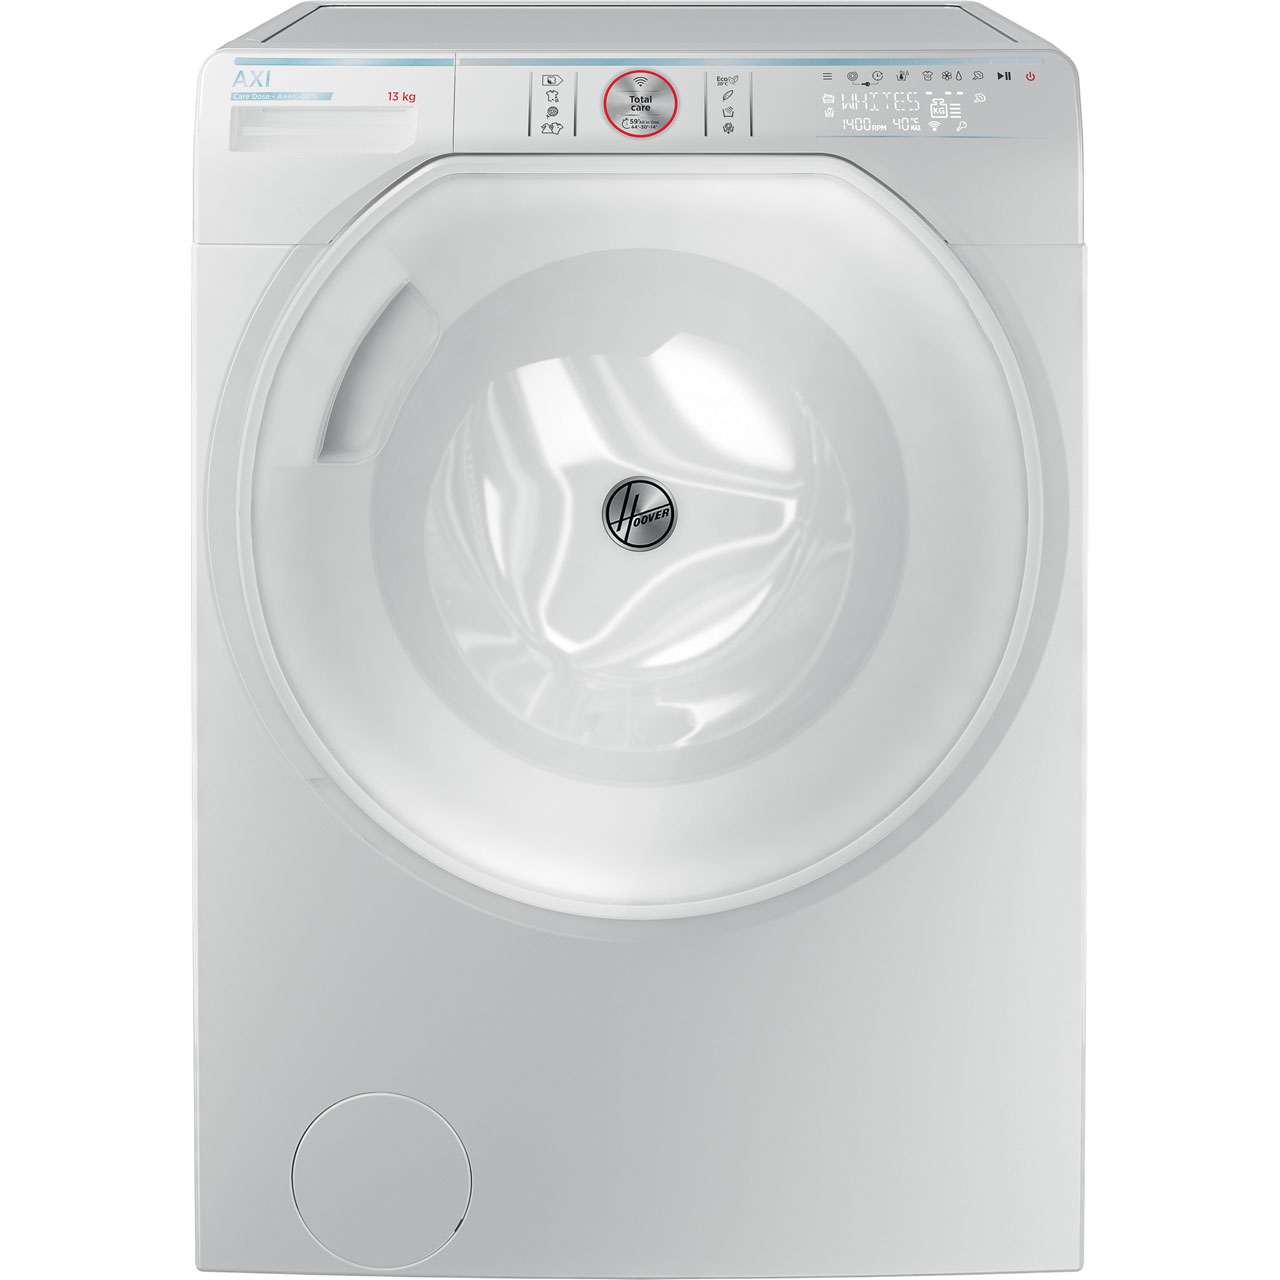 Hoover AXI AWMPD69LHO7 Wifi Connected 9Kg Washing Machine review